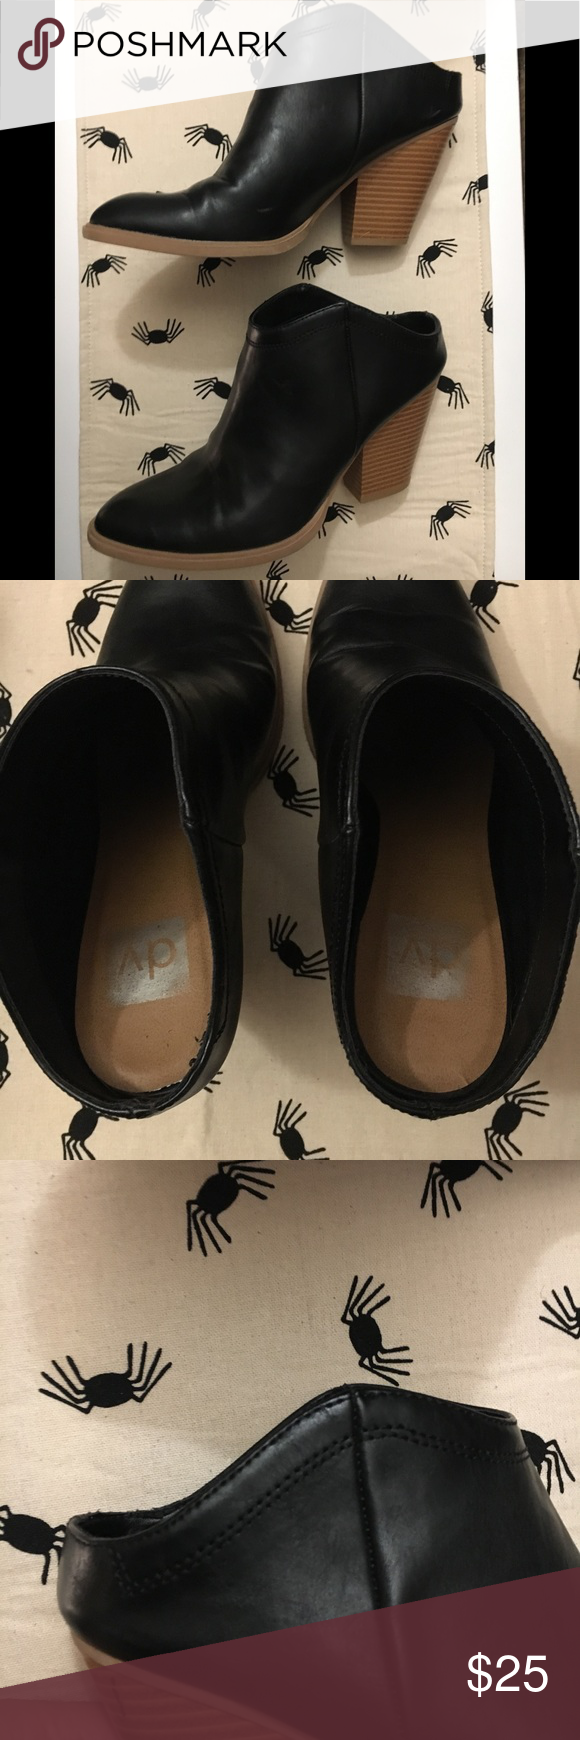 5956f14e8cbf DV for Target Nya Mule Booties black faux leather Super cute mule booties  perfect for fall! Dolce Vita for Target 🎯 size 8.5 DV by Dolce Vita Shoes  Ankle ...